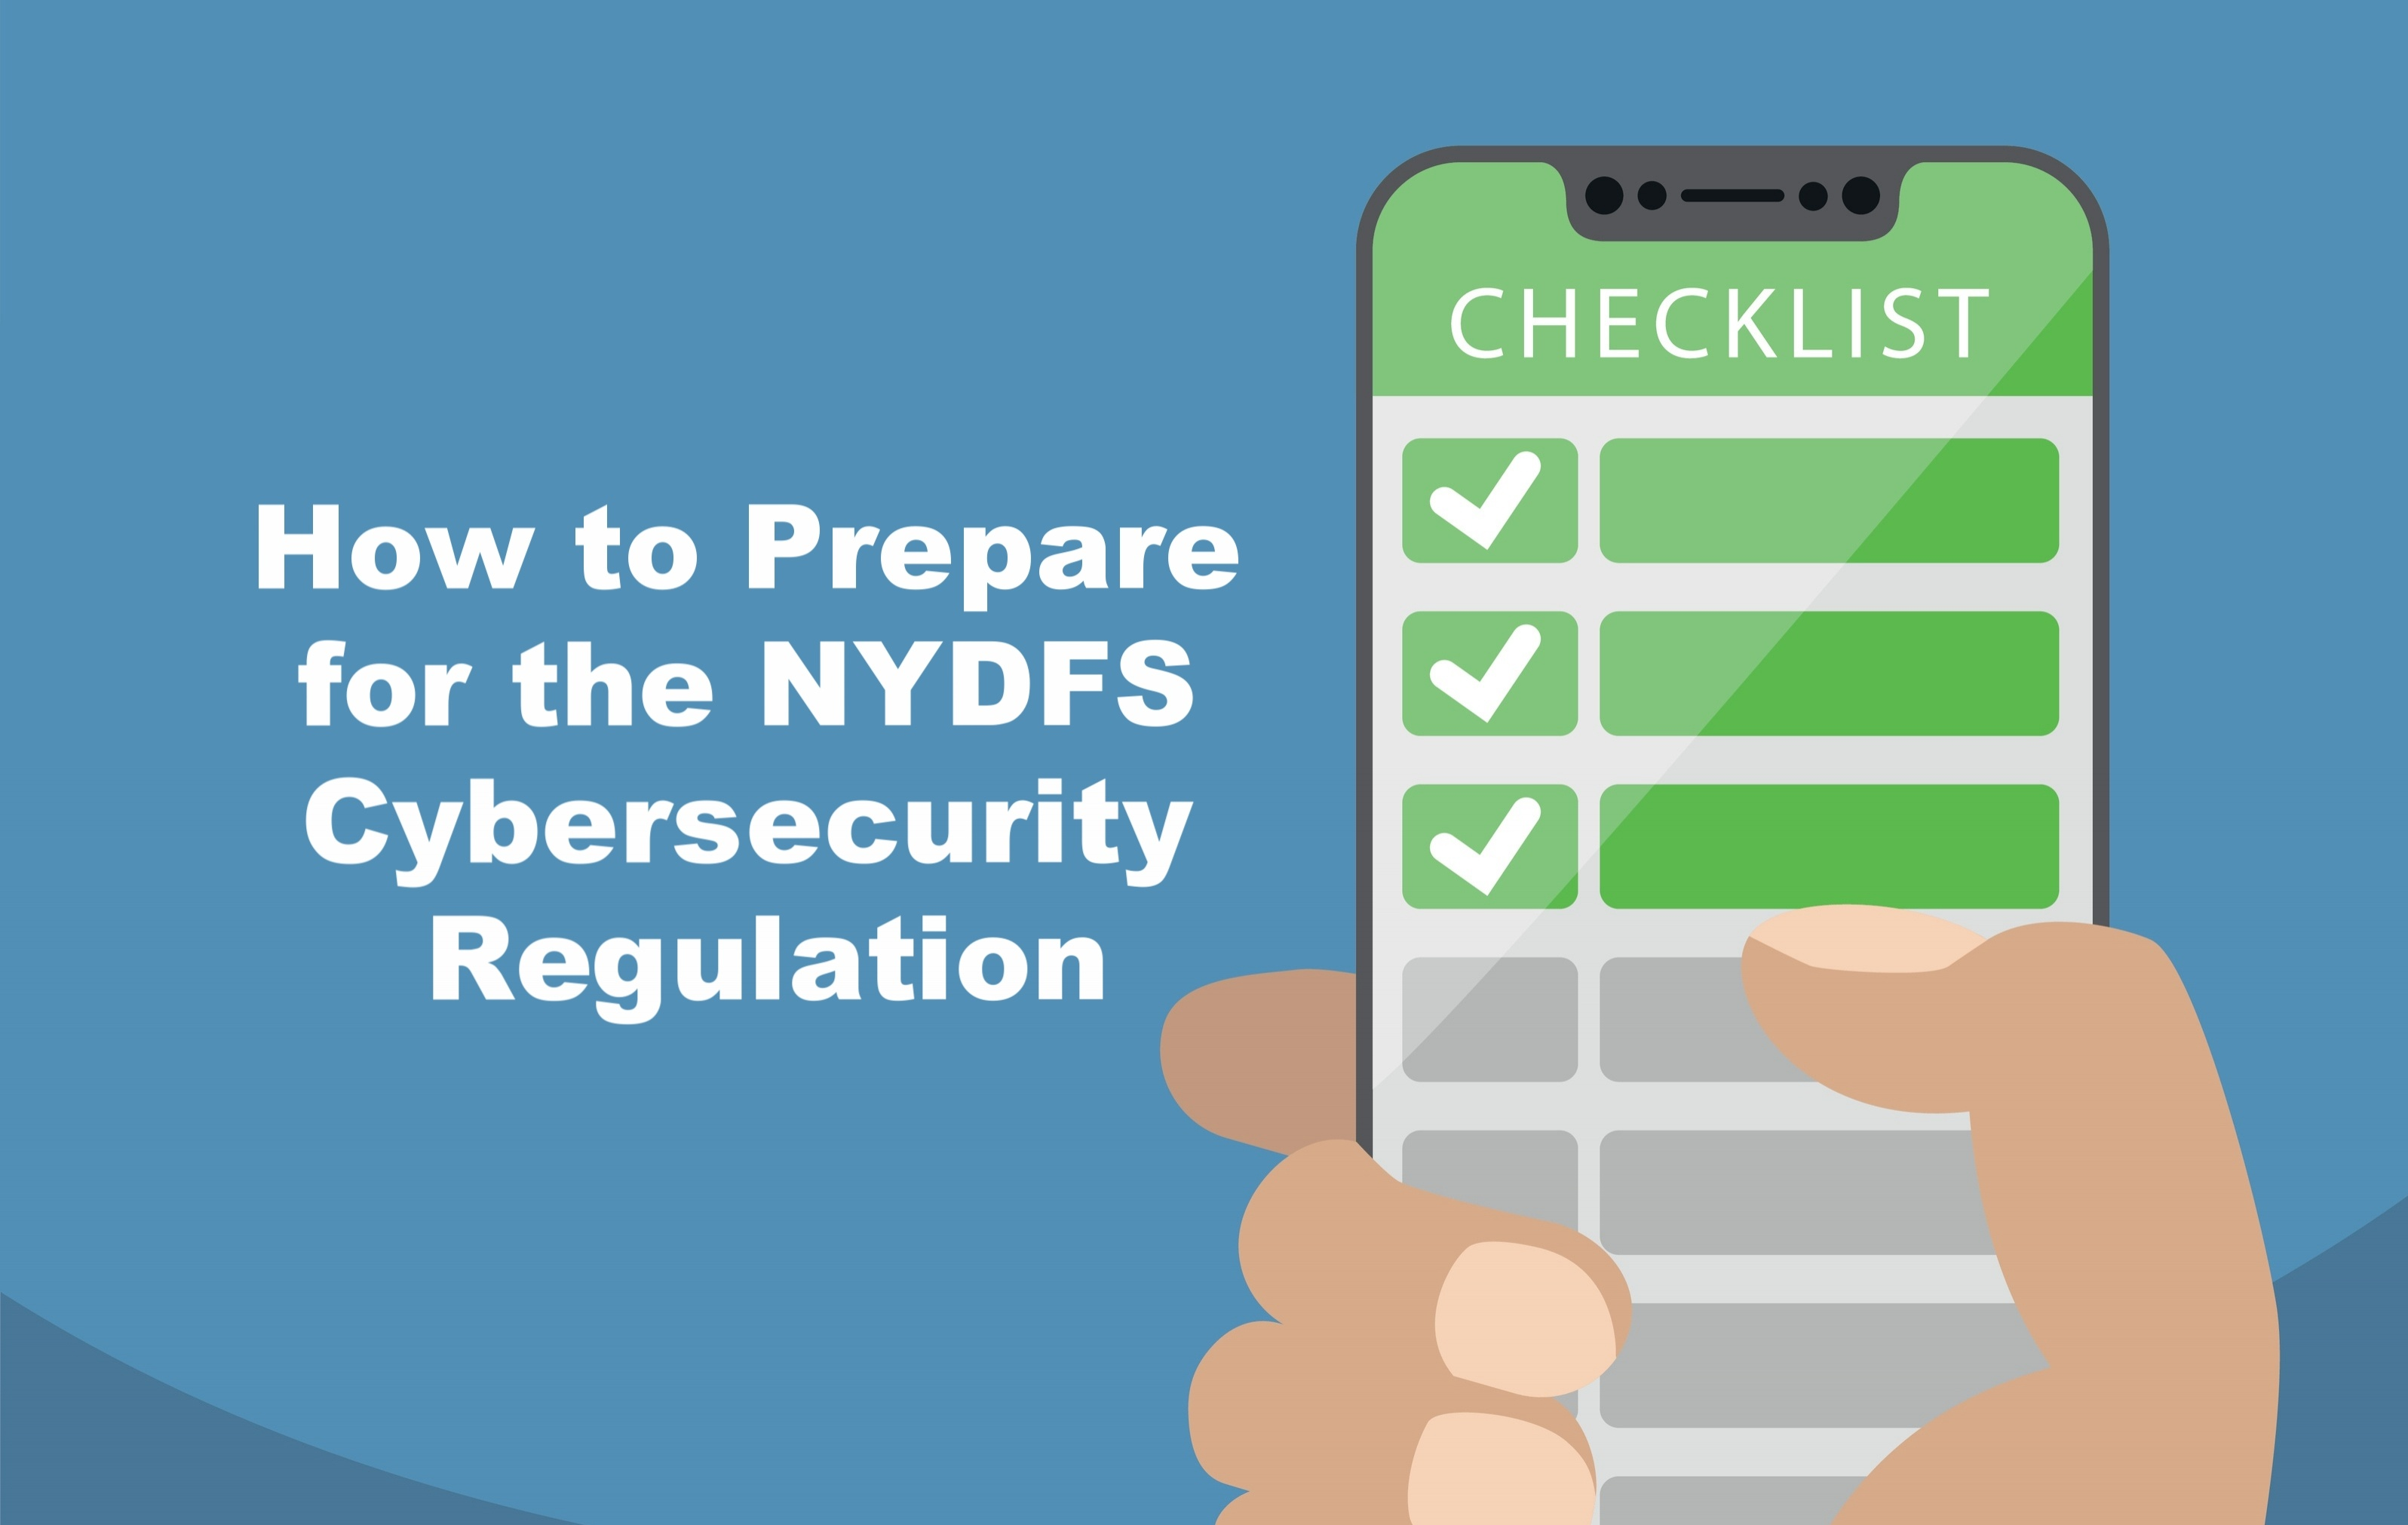 How to Prepare for the NYDFS Cybersecurity Regulation